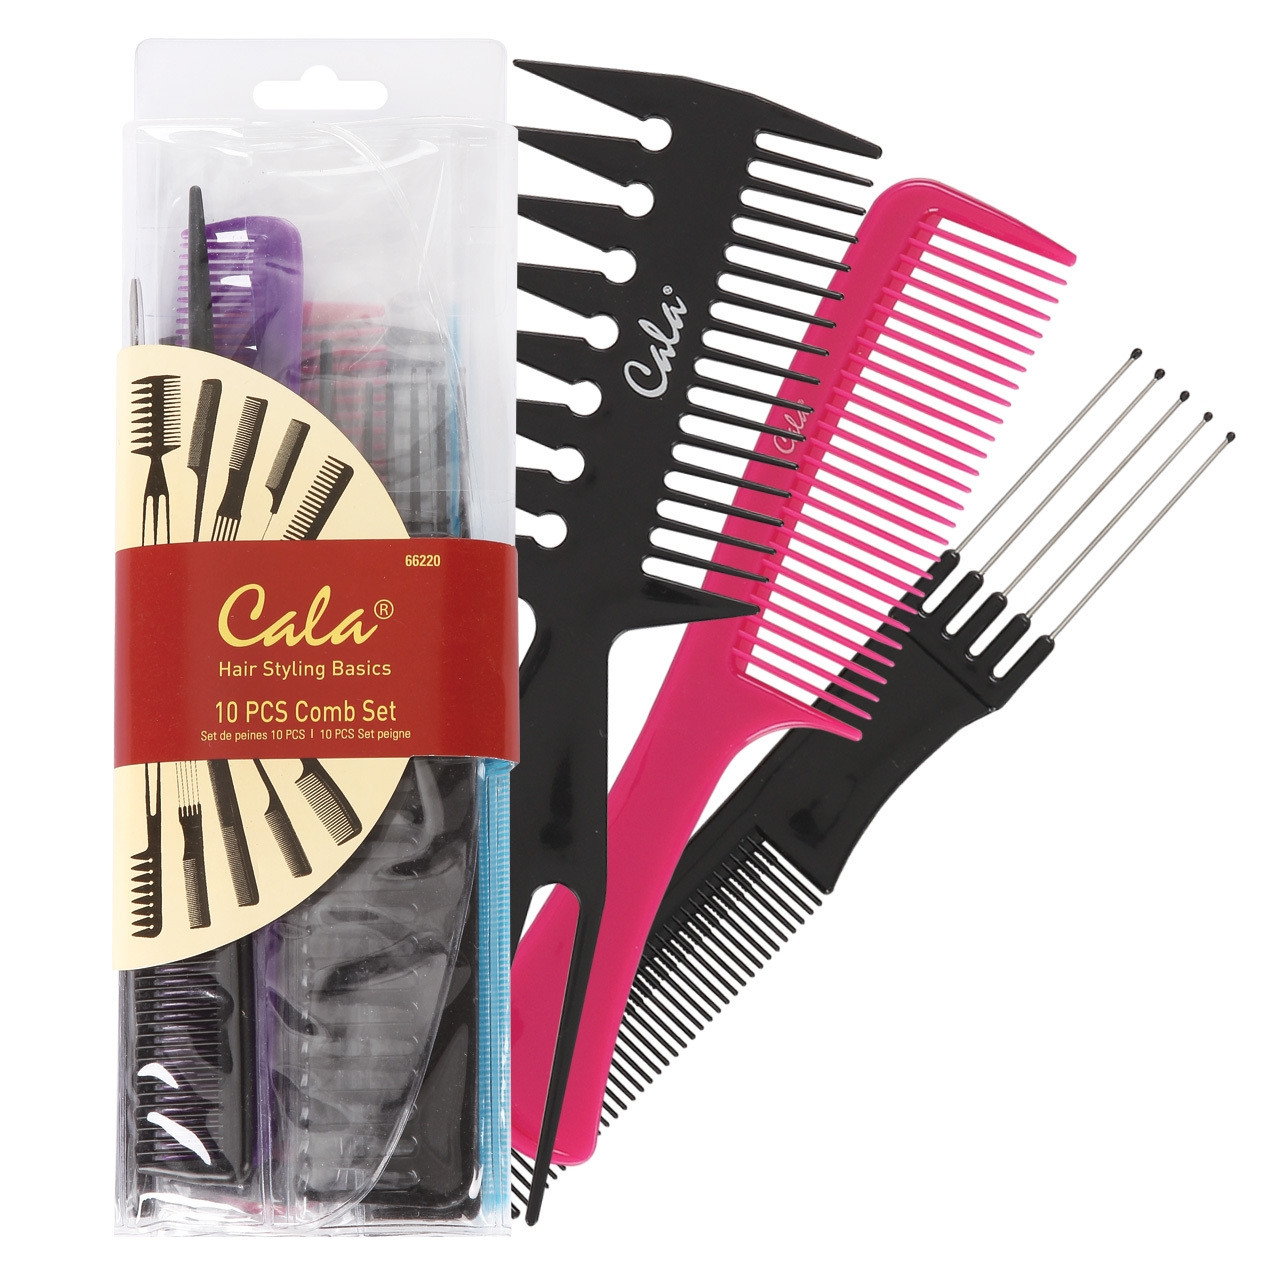 CALA HAIR STYLING COMBO SET 10 PIECES-66220